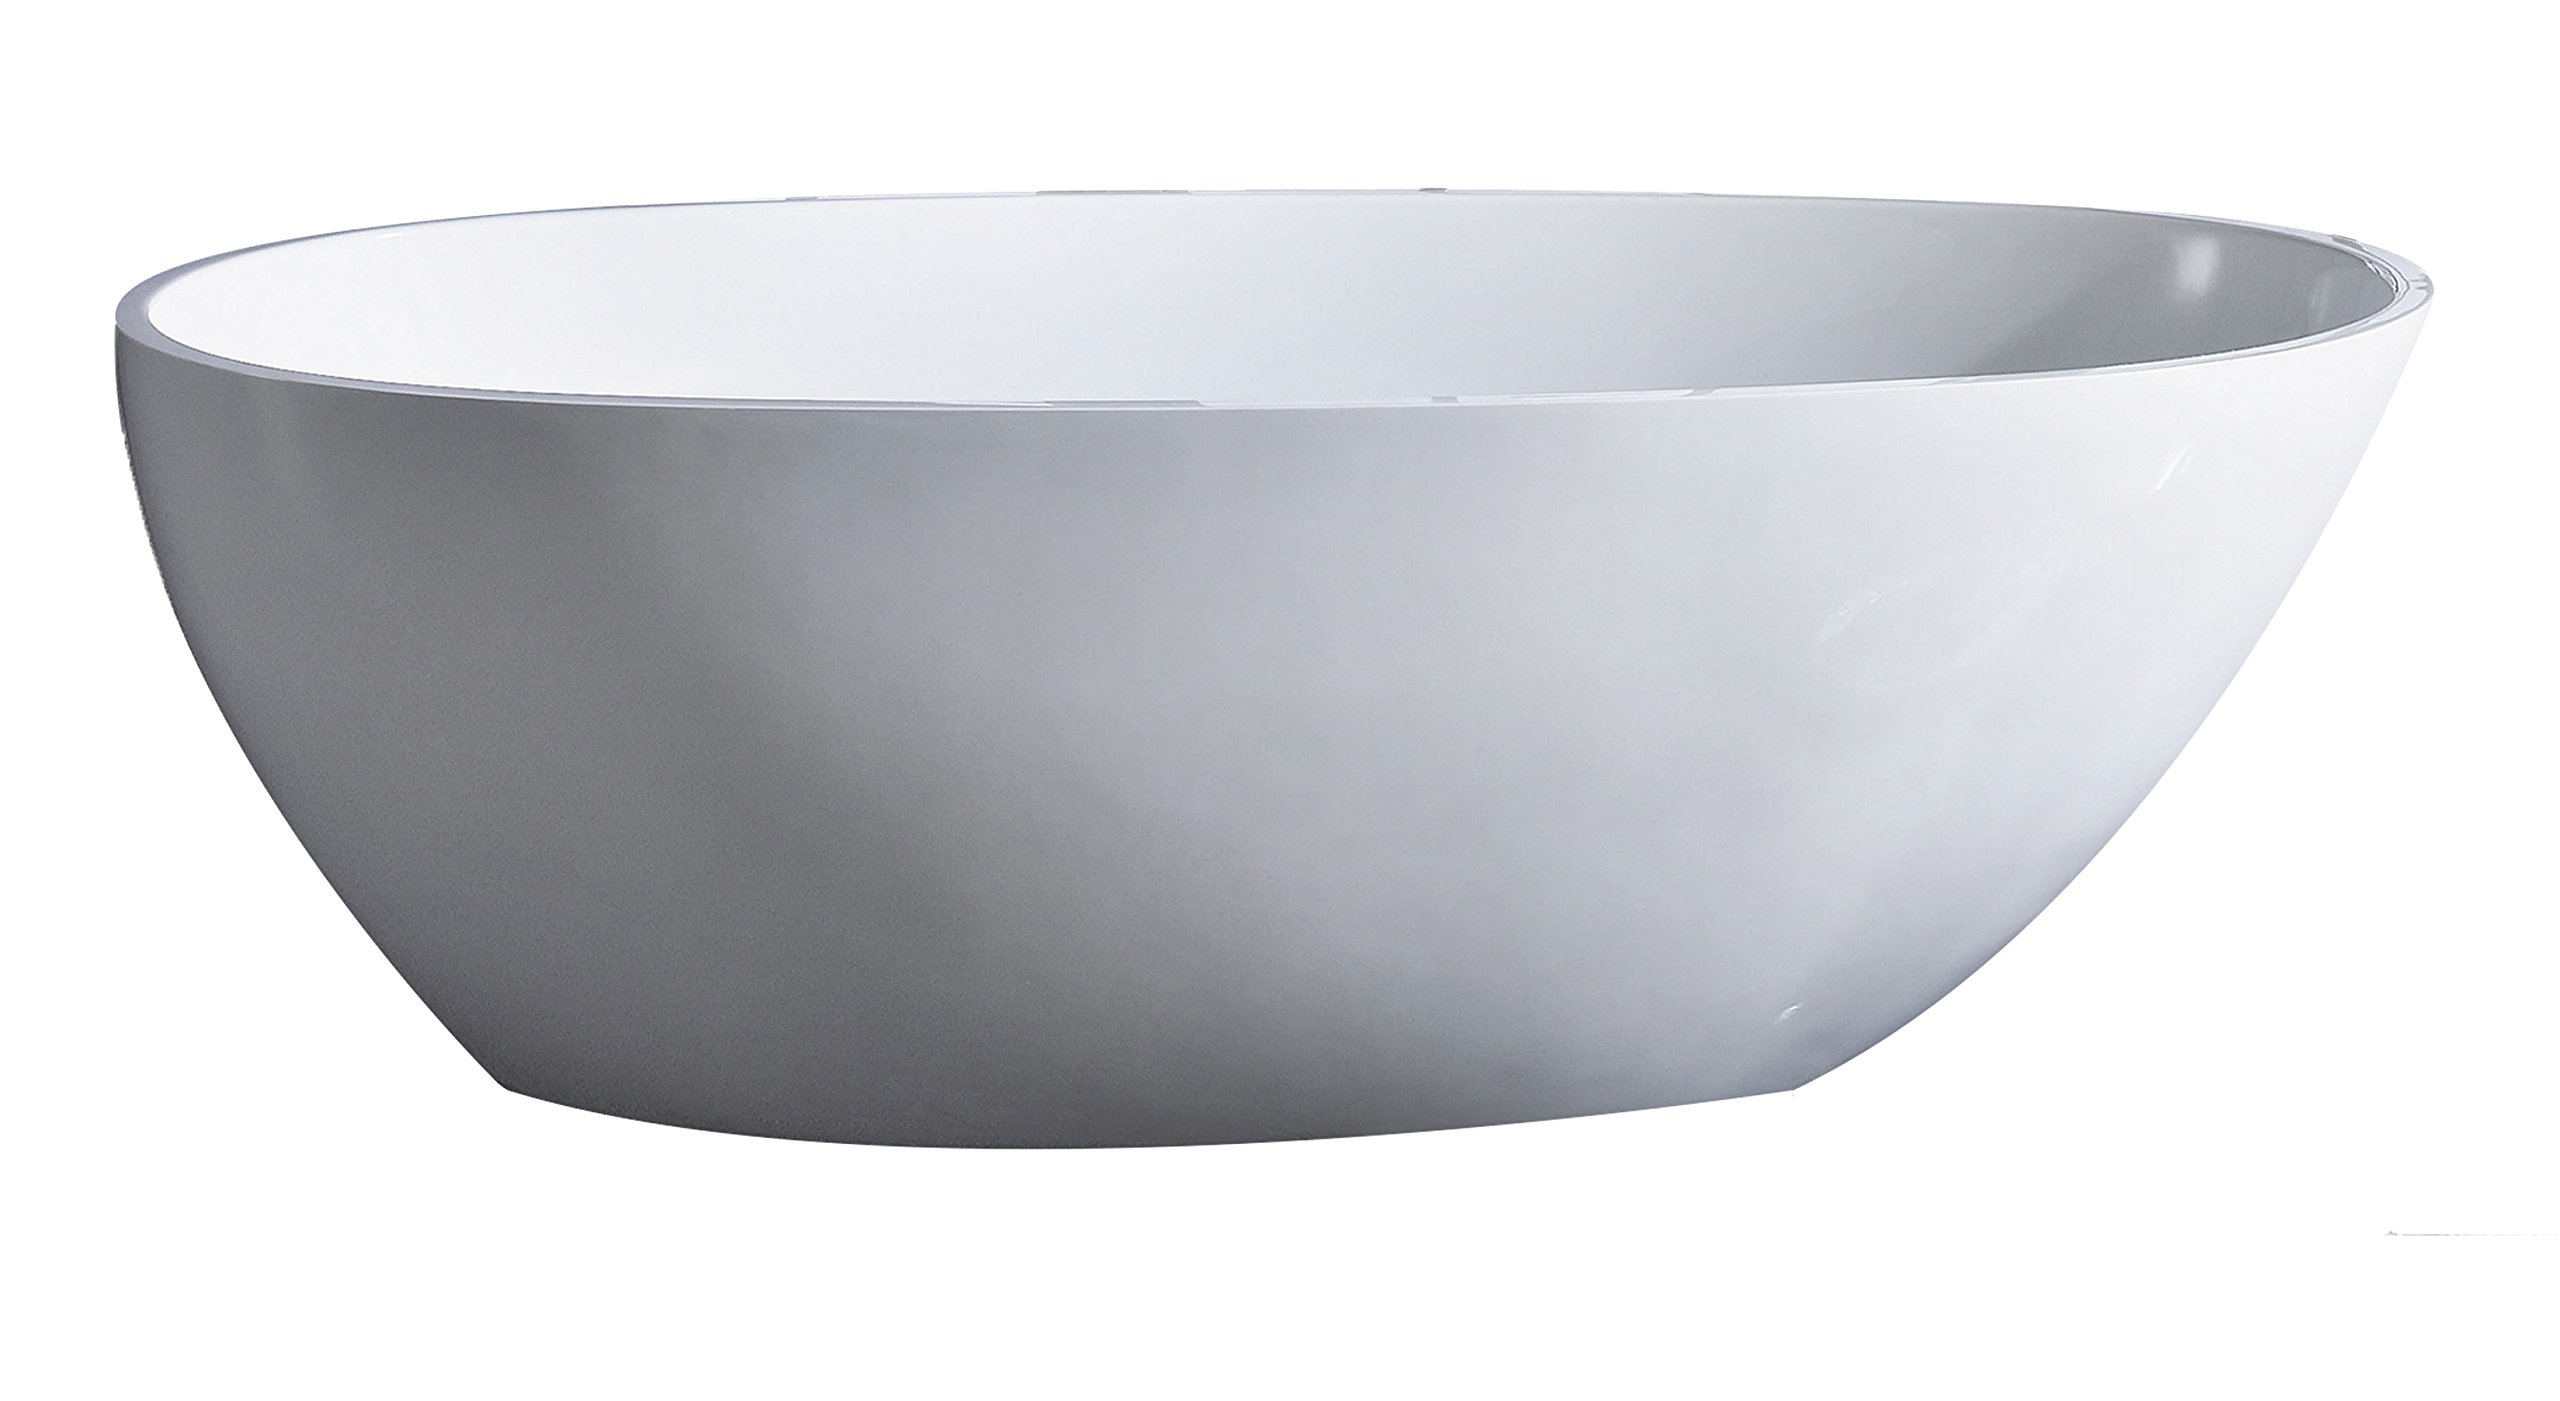 Eviva EVTB6218-60WH Sarah Free Standing 60'' Acrylic Bathtub, White by Eviva